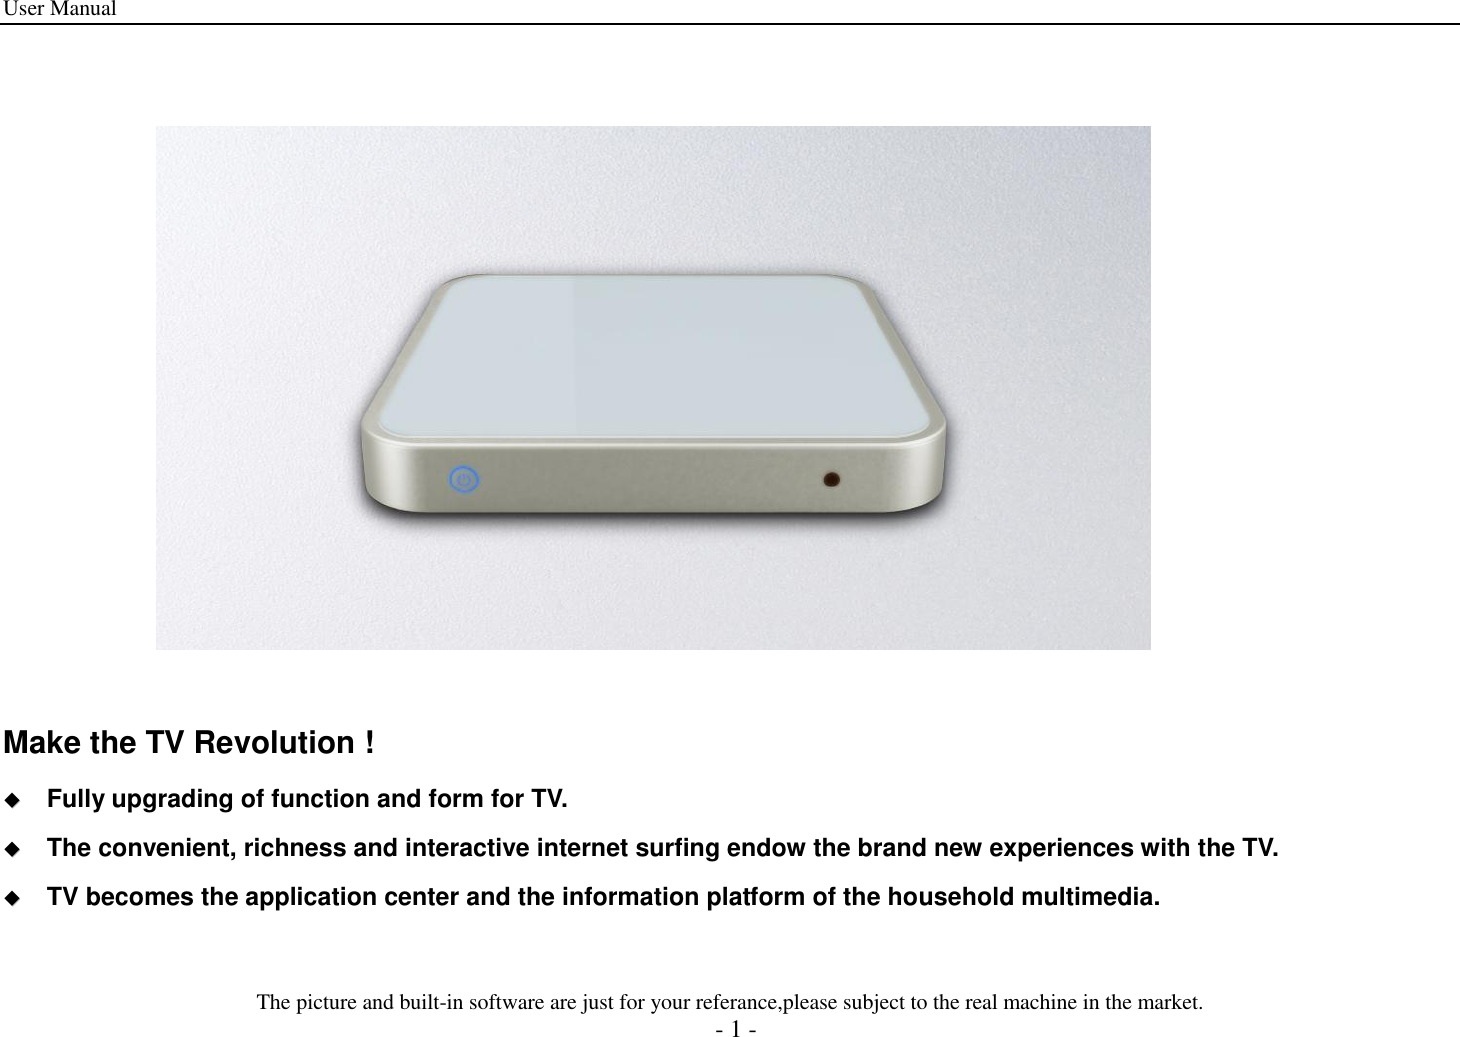 Champion Asia Digital Technology EBOX IPTV BOX User Manual